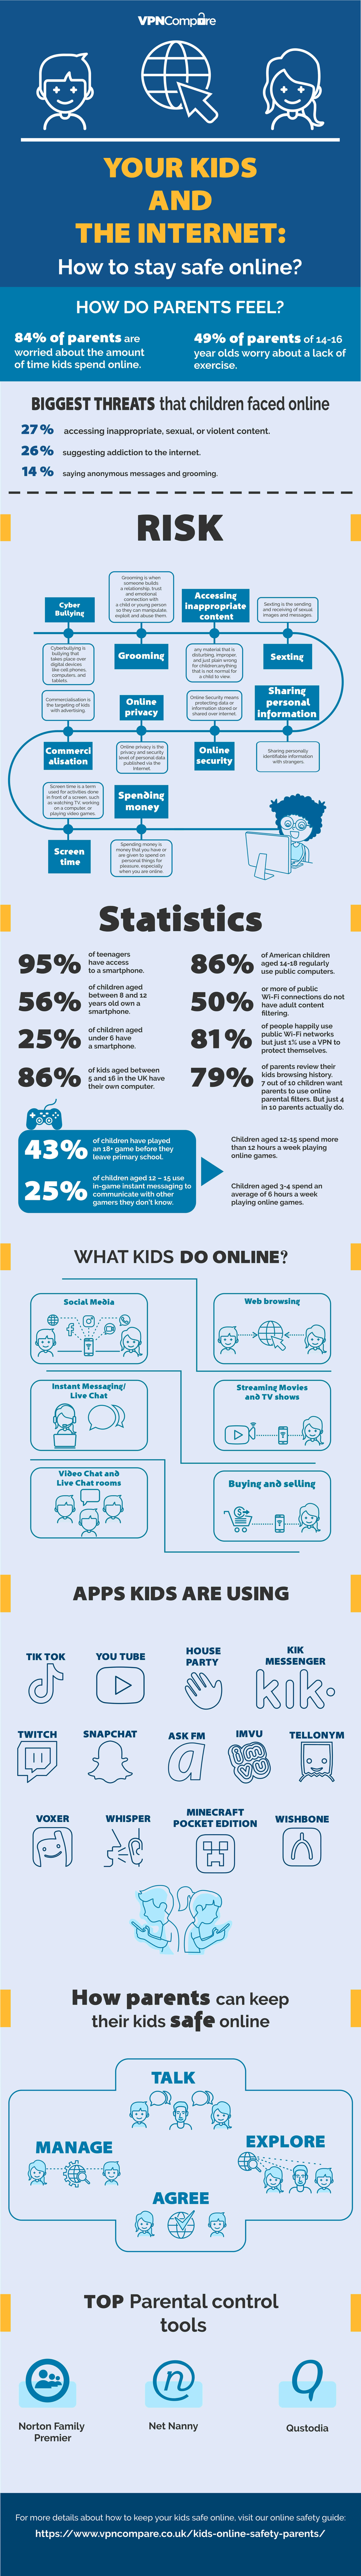 Infographic on Kids Online Safety